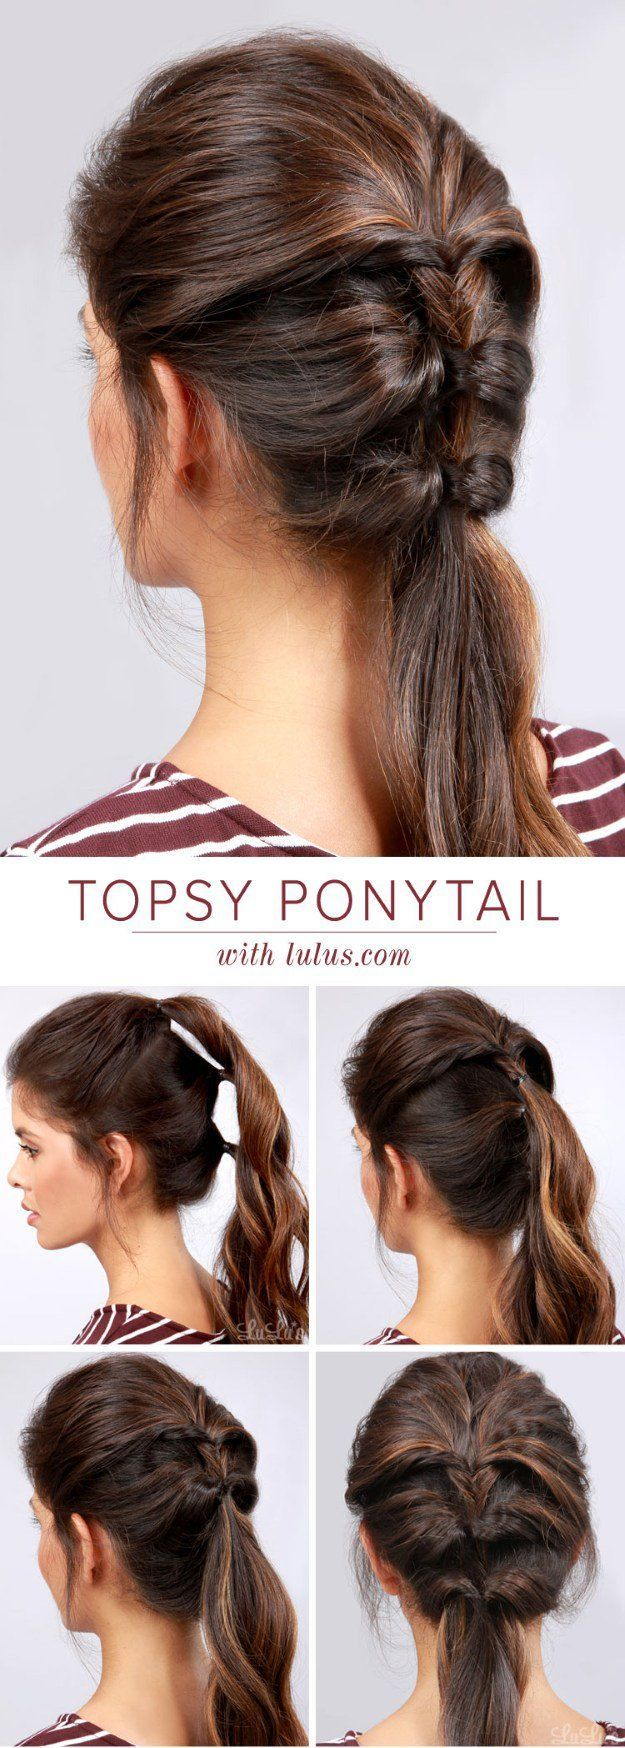 Hairstyles For Short Hair     Picture    Description  Ponytail is every woman's best friend; its the go to option for bad hair days, fancy events or even casual outings. check out these ponytails     https://looks.tn/hairstyles/short/hairstyles-for-short-hair-ponytail-is-every-womans-best-friend-its-the-go-to-option-for-bad-hair-day-4/